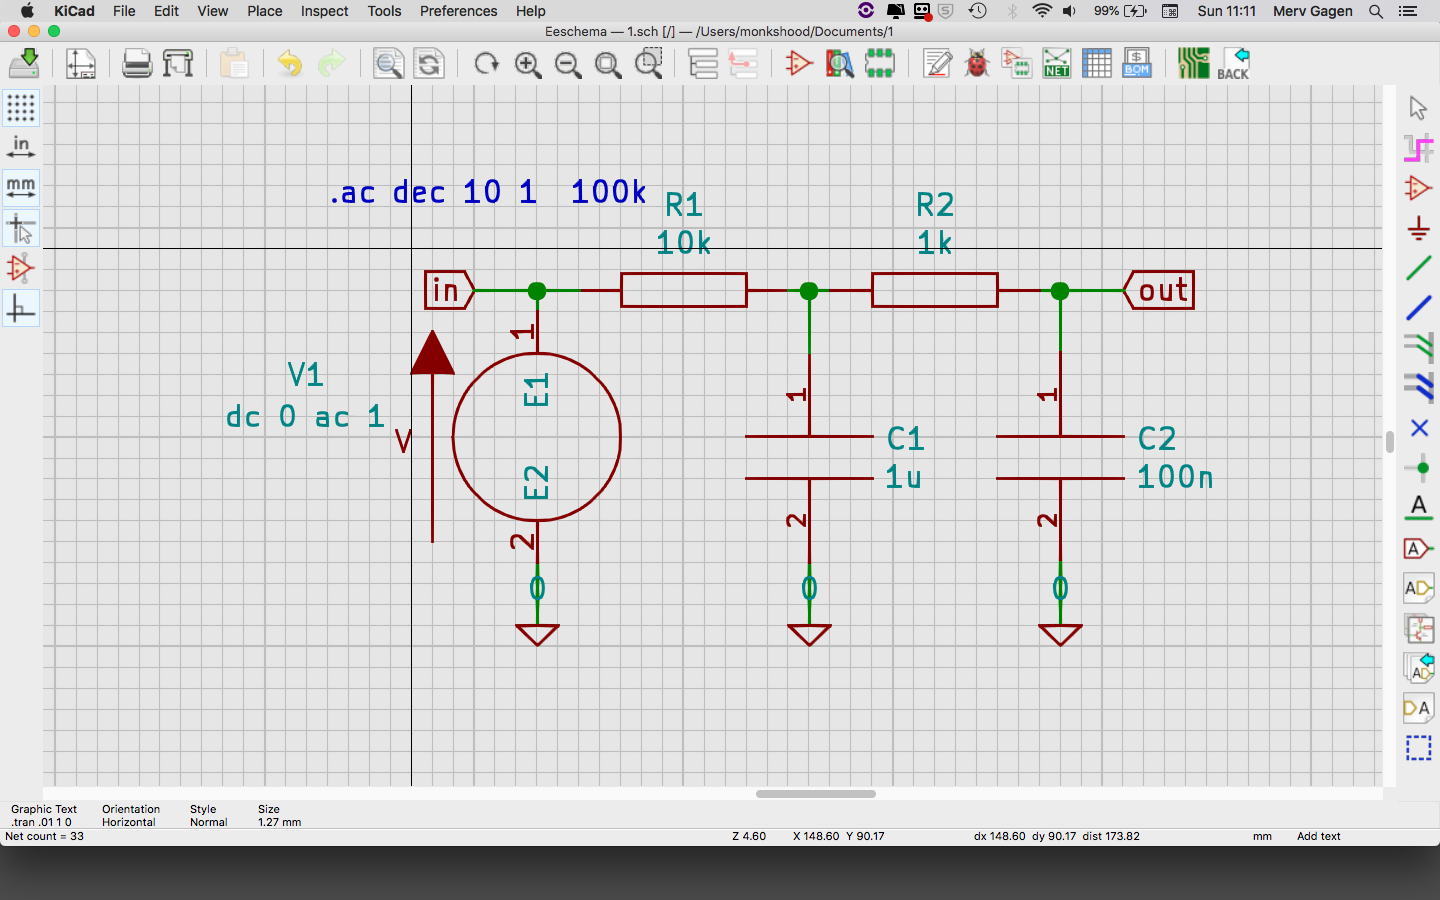 Having trouble simulating in KiCAD? - Simulation (Ngspice